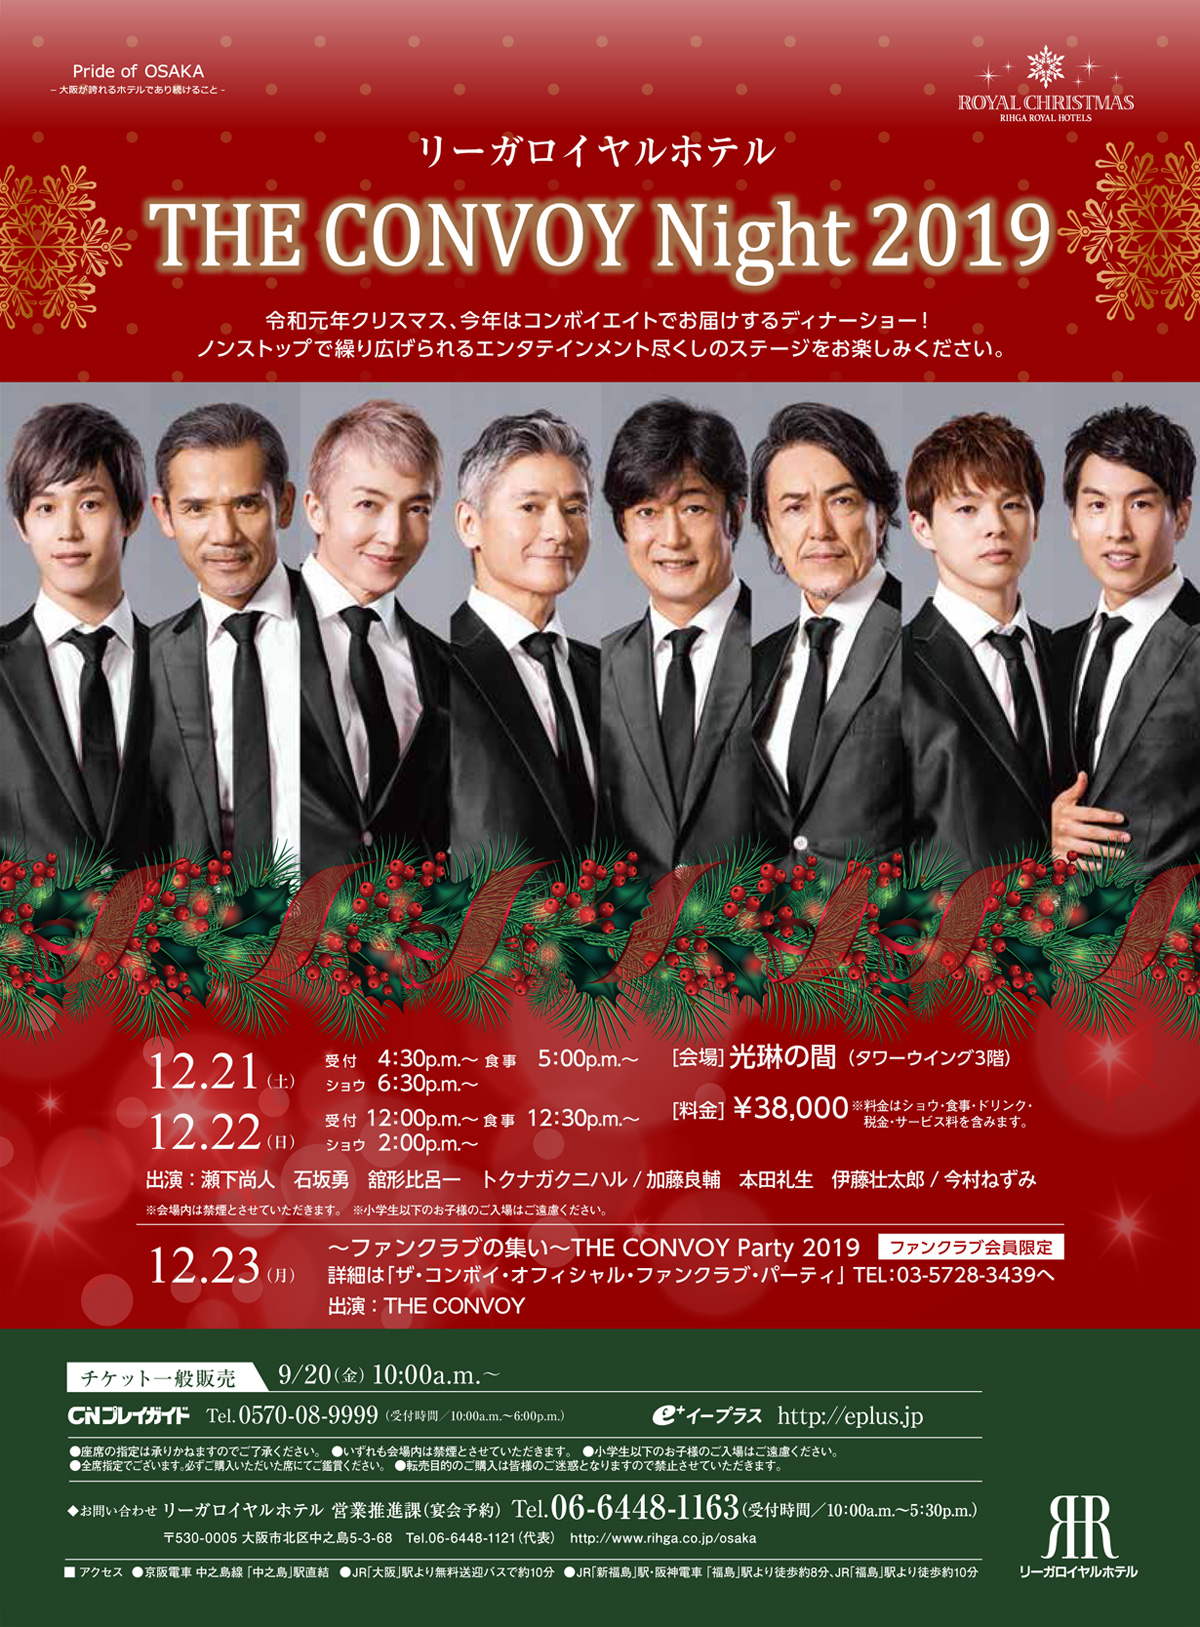 THE CONVOY Night 2019